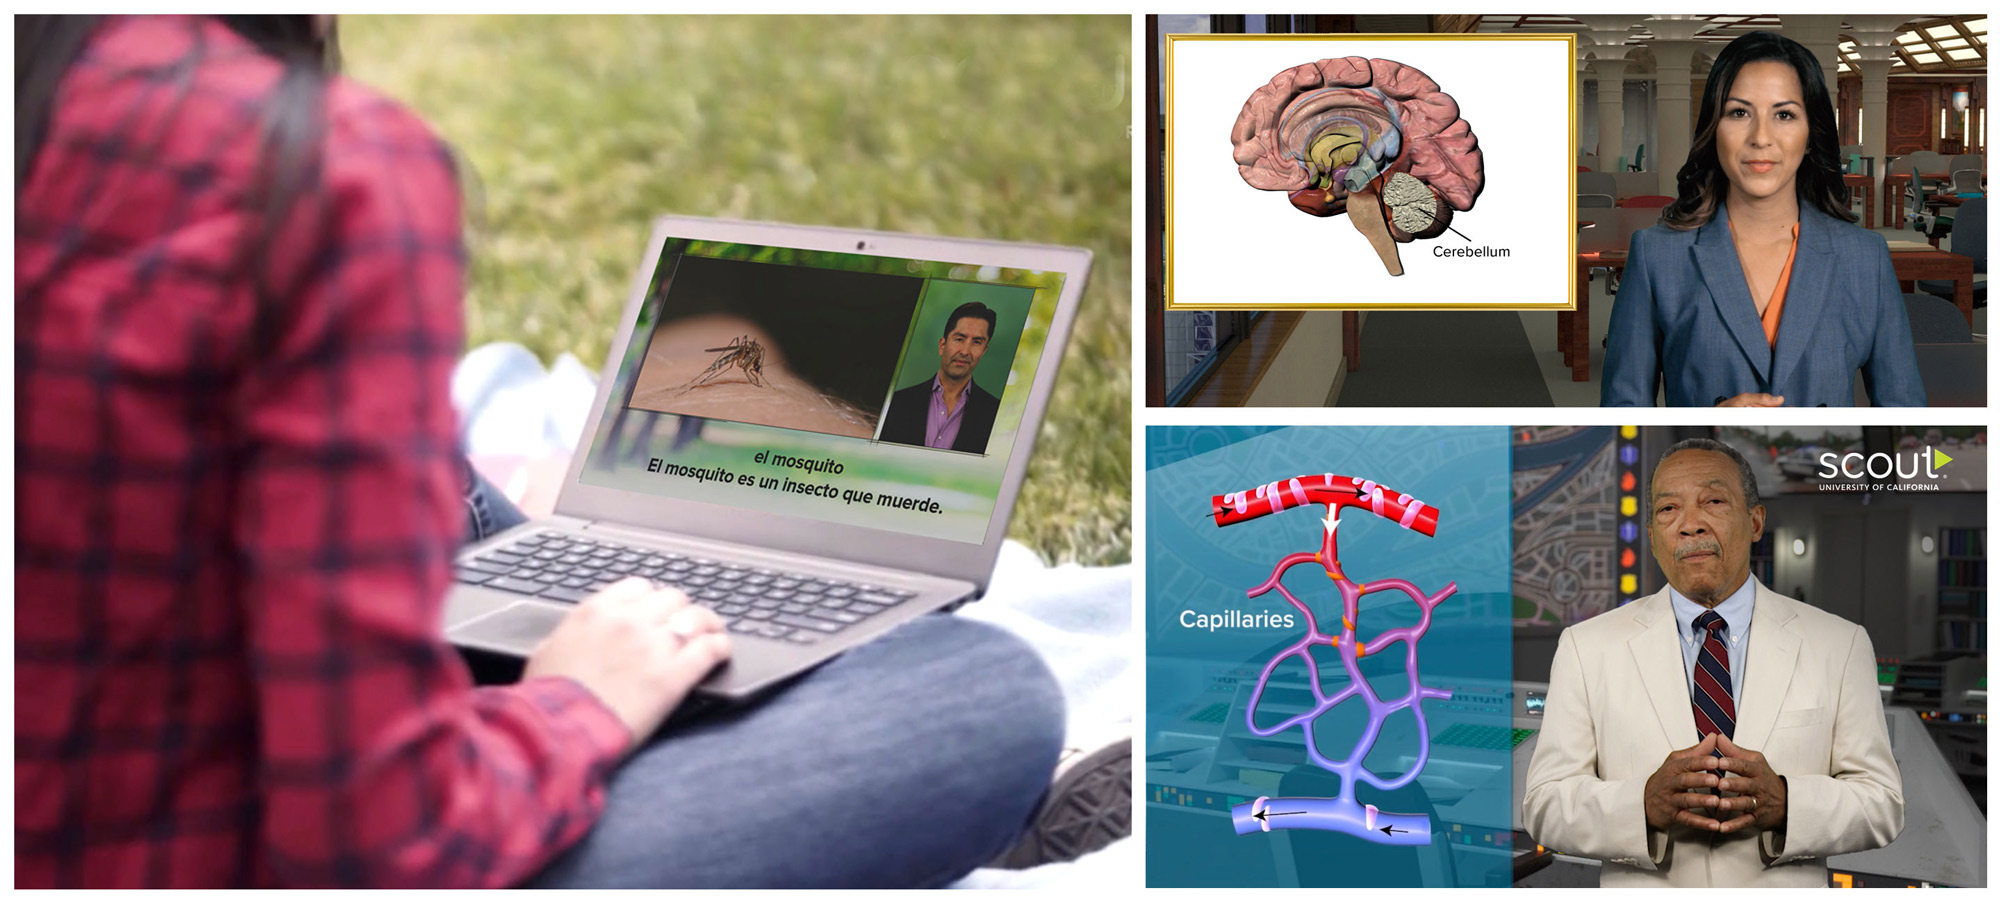 viewing video on a laptop, discussing the cerebellum, capillaries diagram, Scout - University of California broadcast